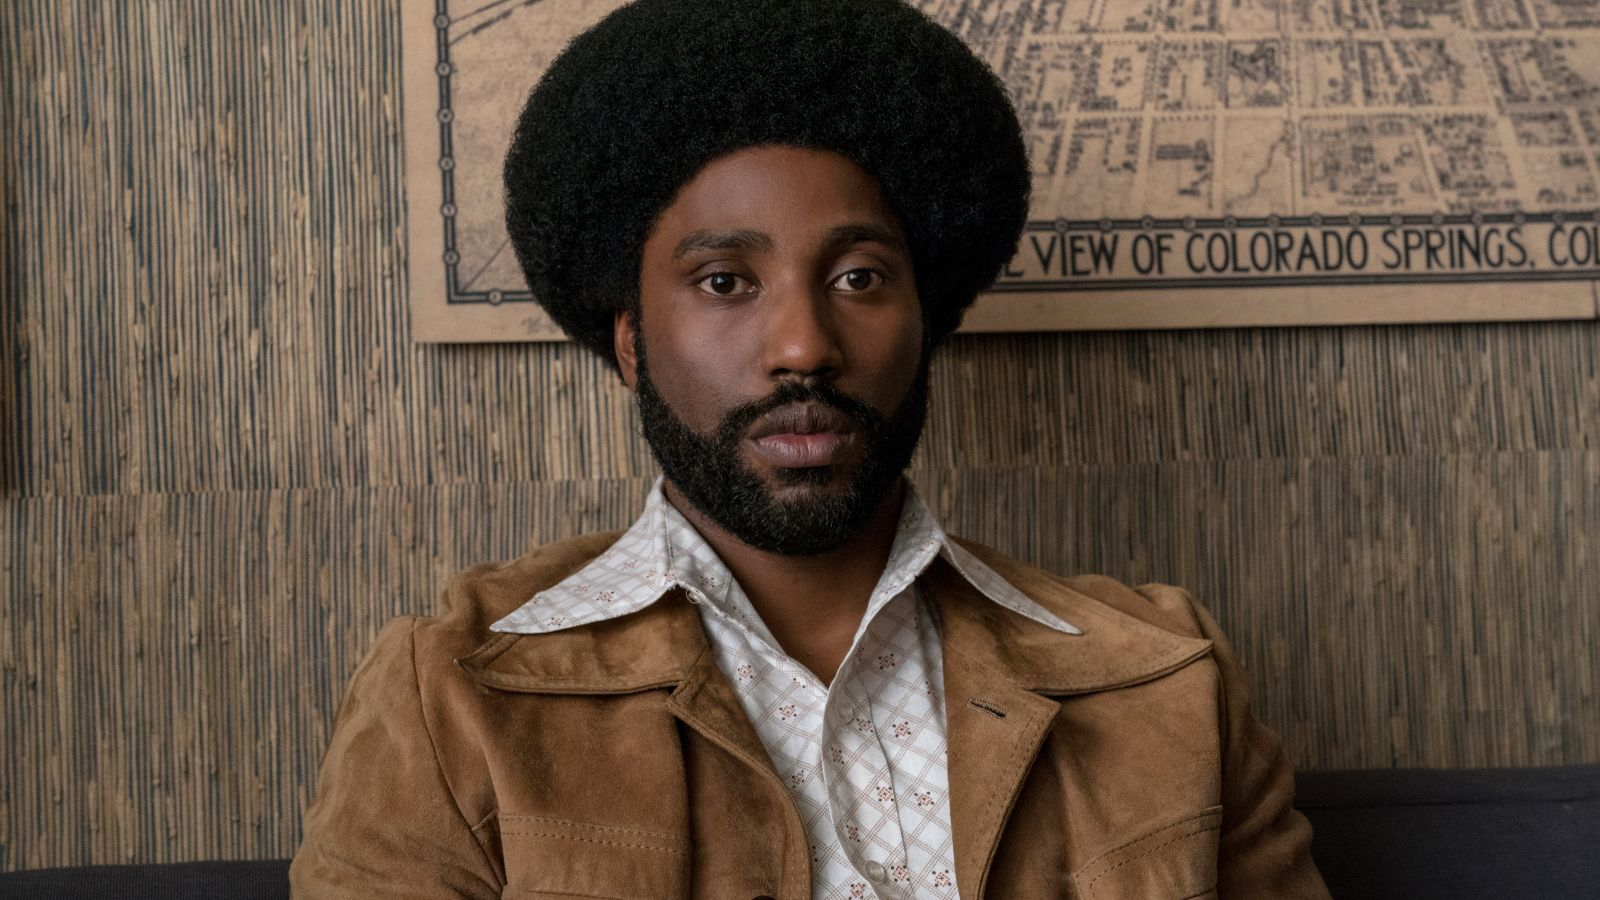 Spike Lee's messy, funny BlacKkKlansman clowns on the dipshit thugs of skinhead America